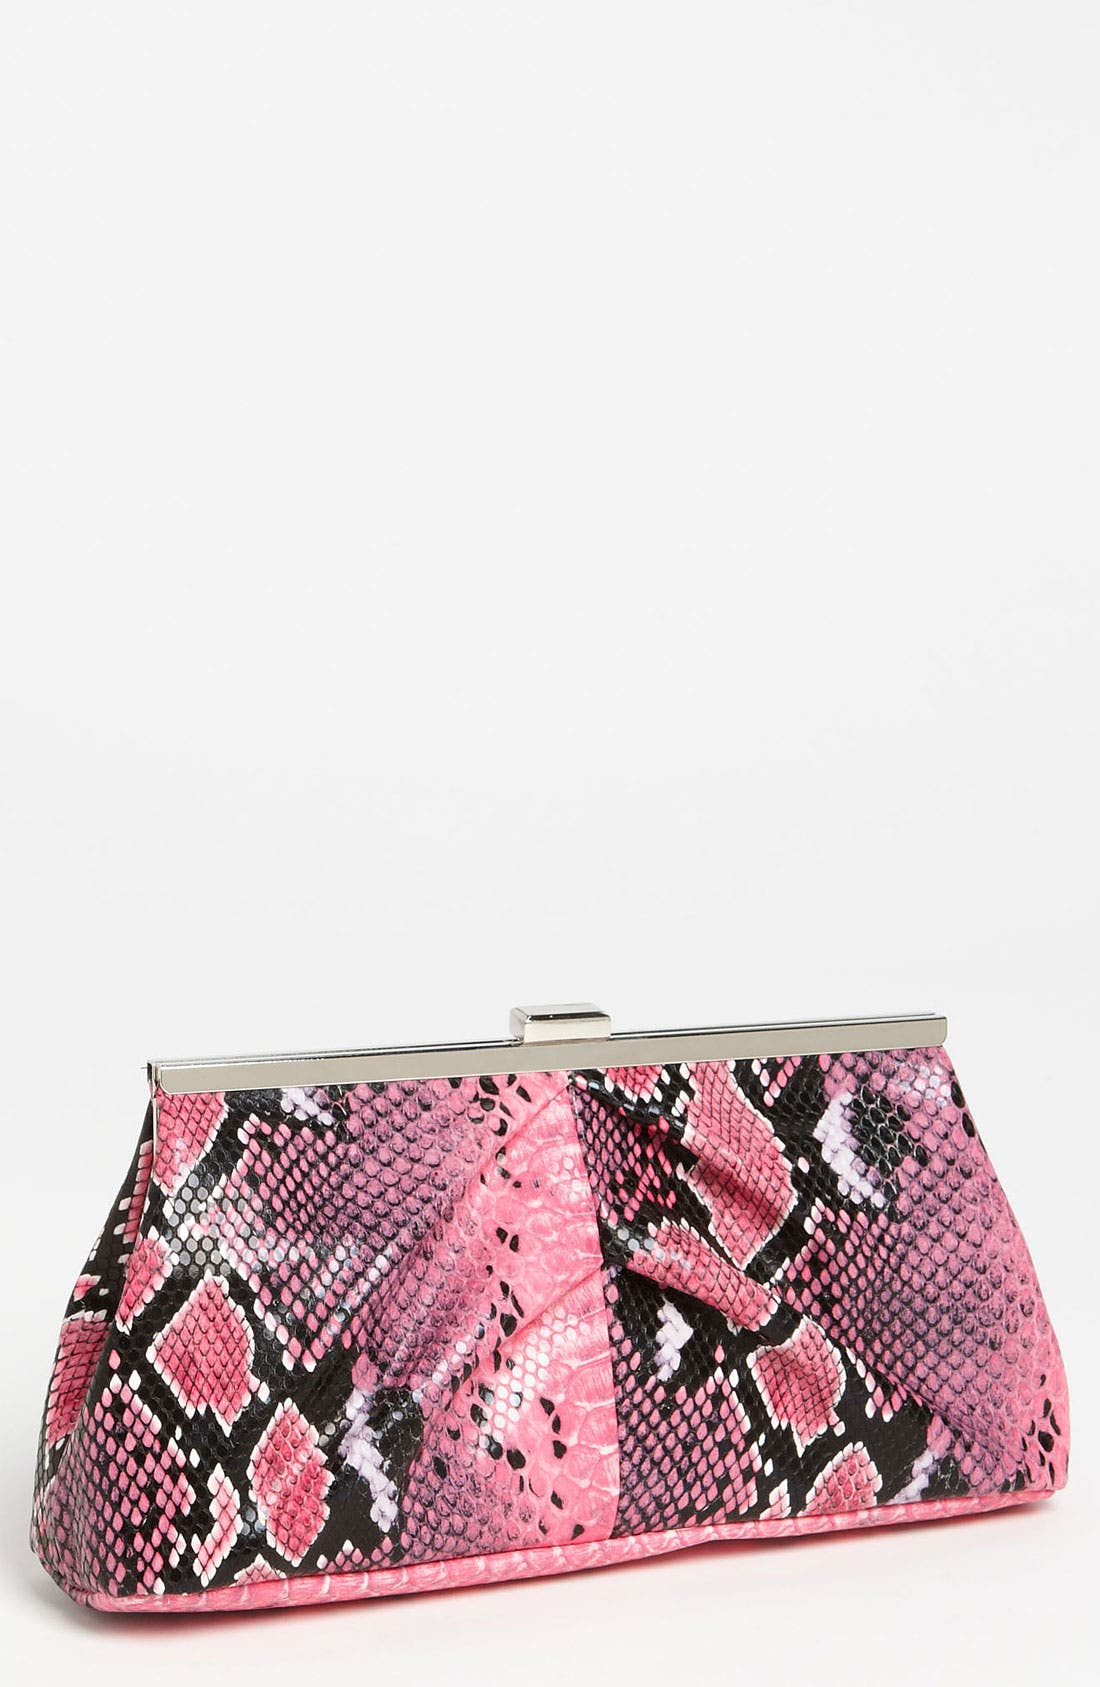 Alternate Image 1 Selected - Natasha Couture Snake Print Clutch